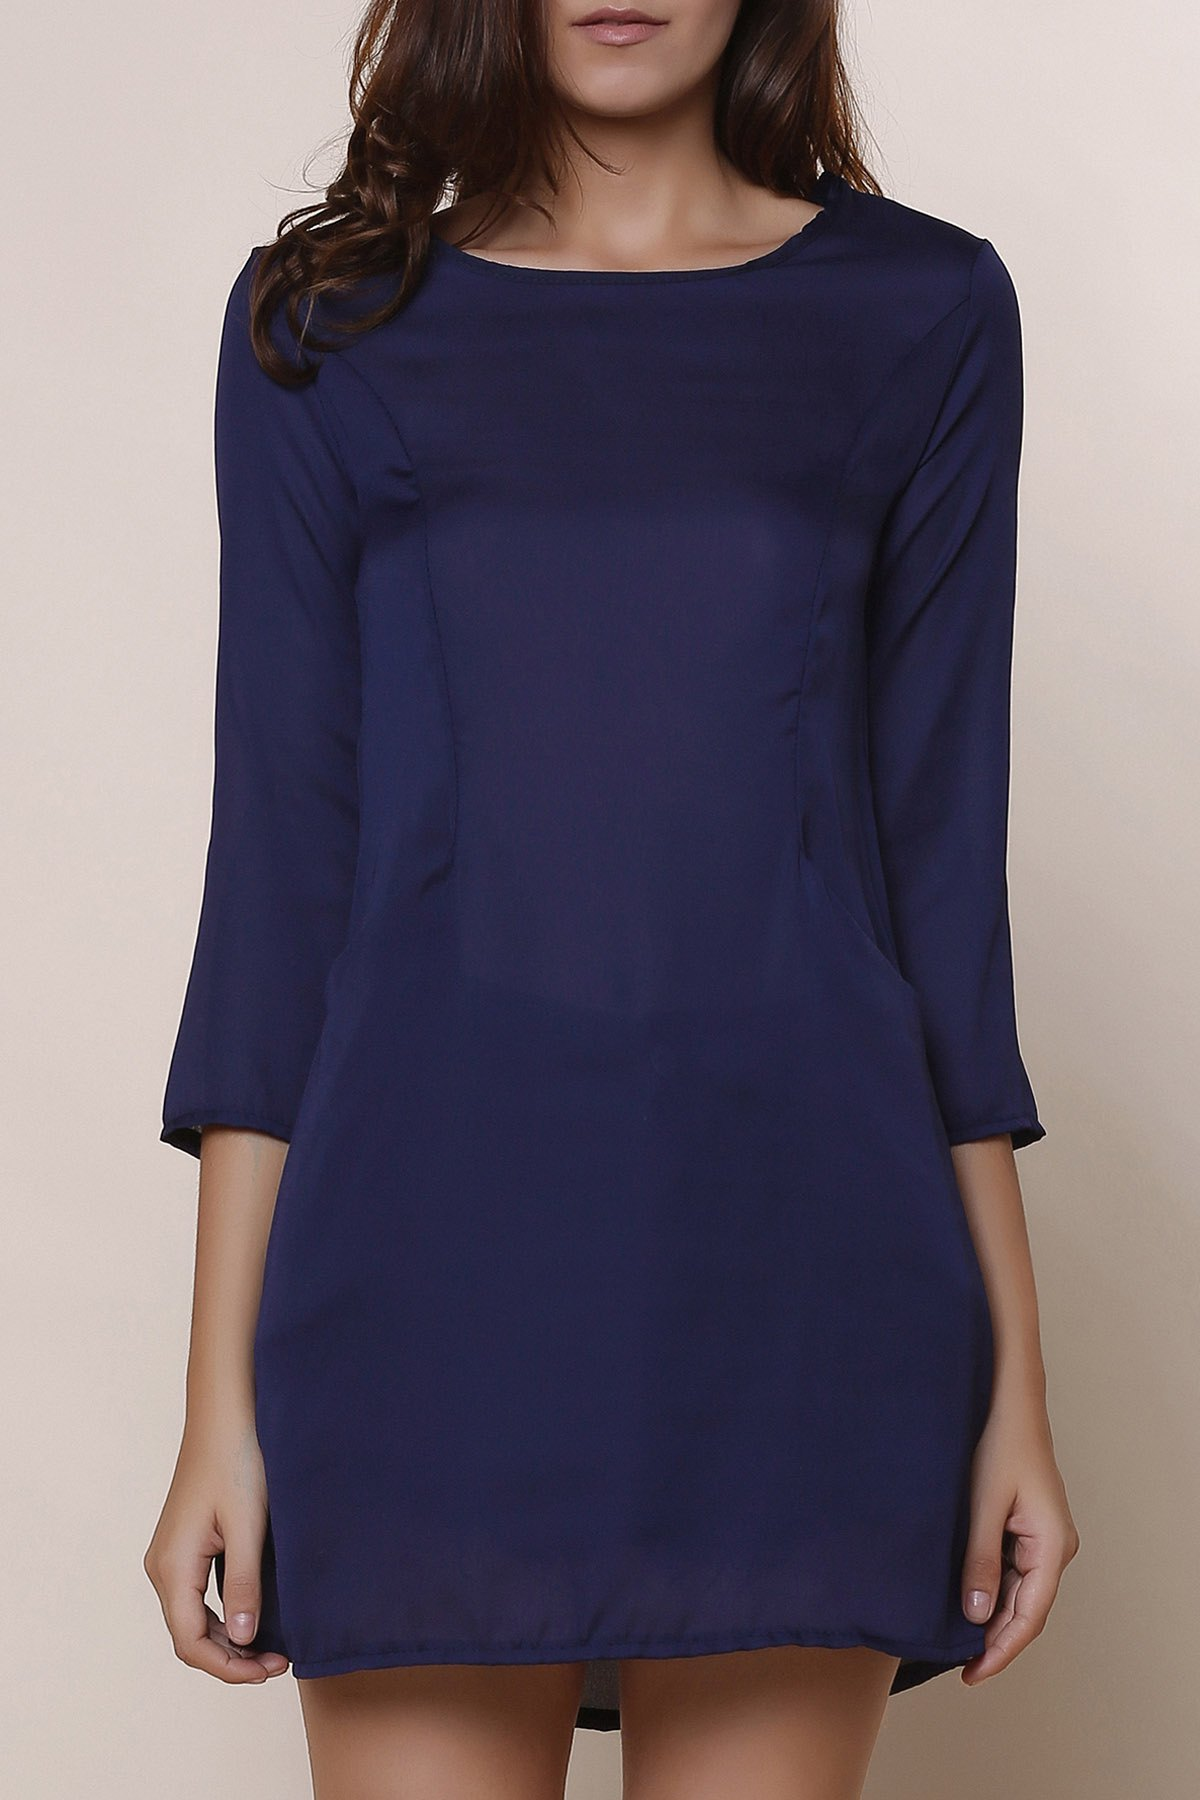 Casual Scoop Neck Solid Color 3/4 Sleeve Women's Chiffon Dress - BLUE XL